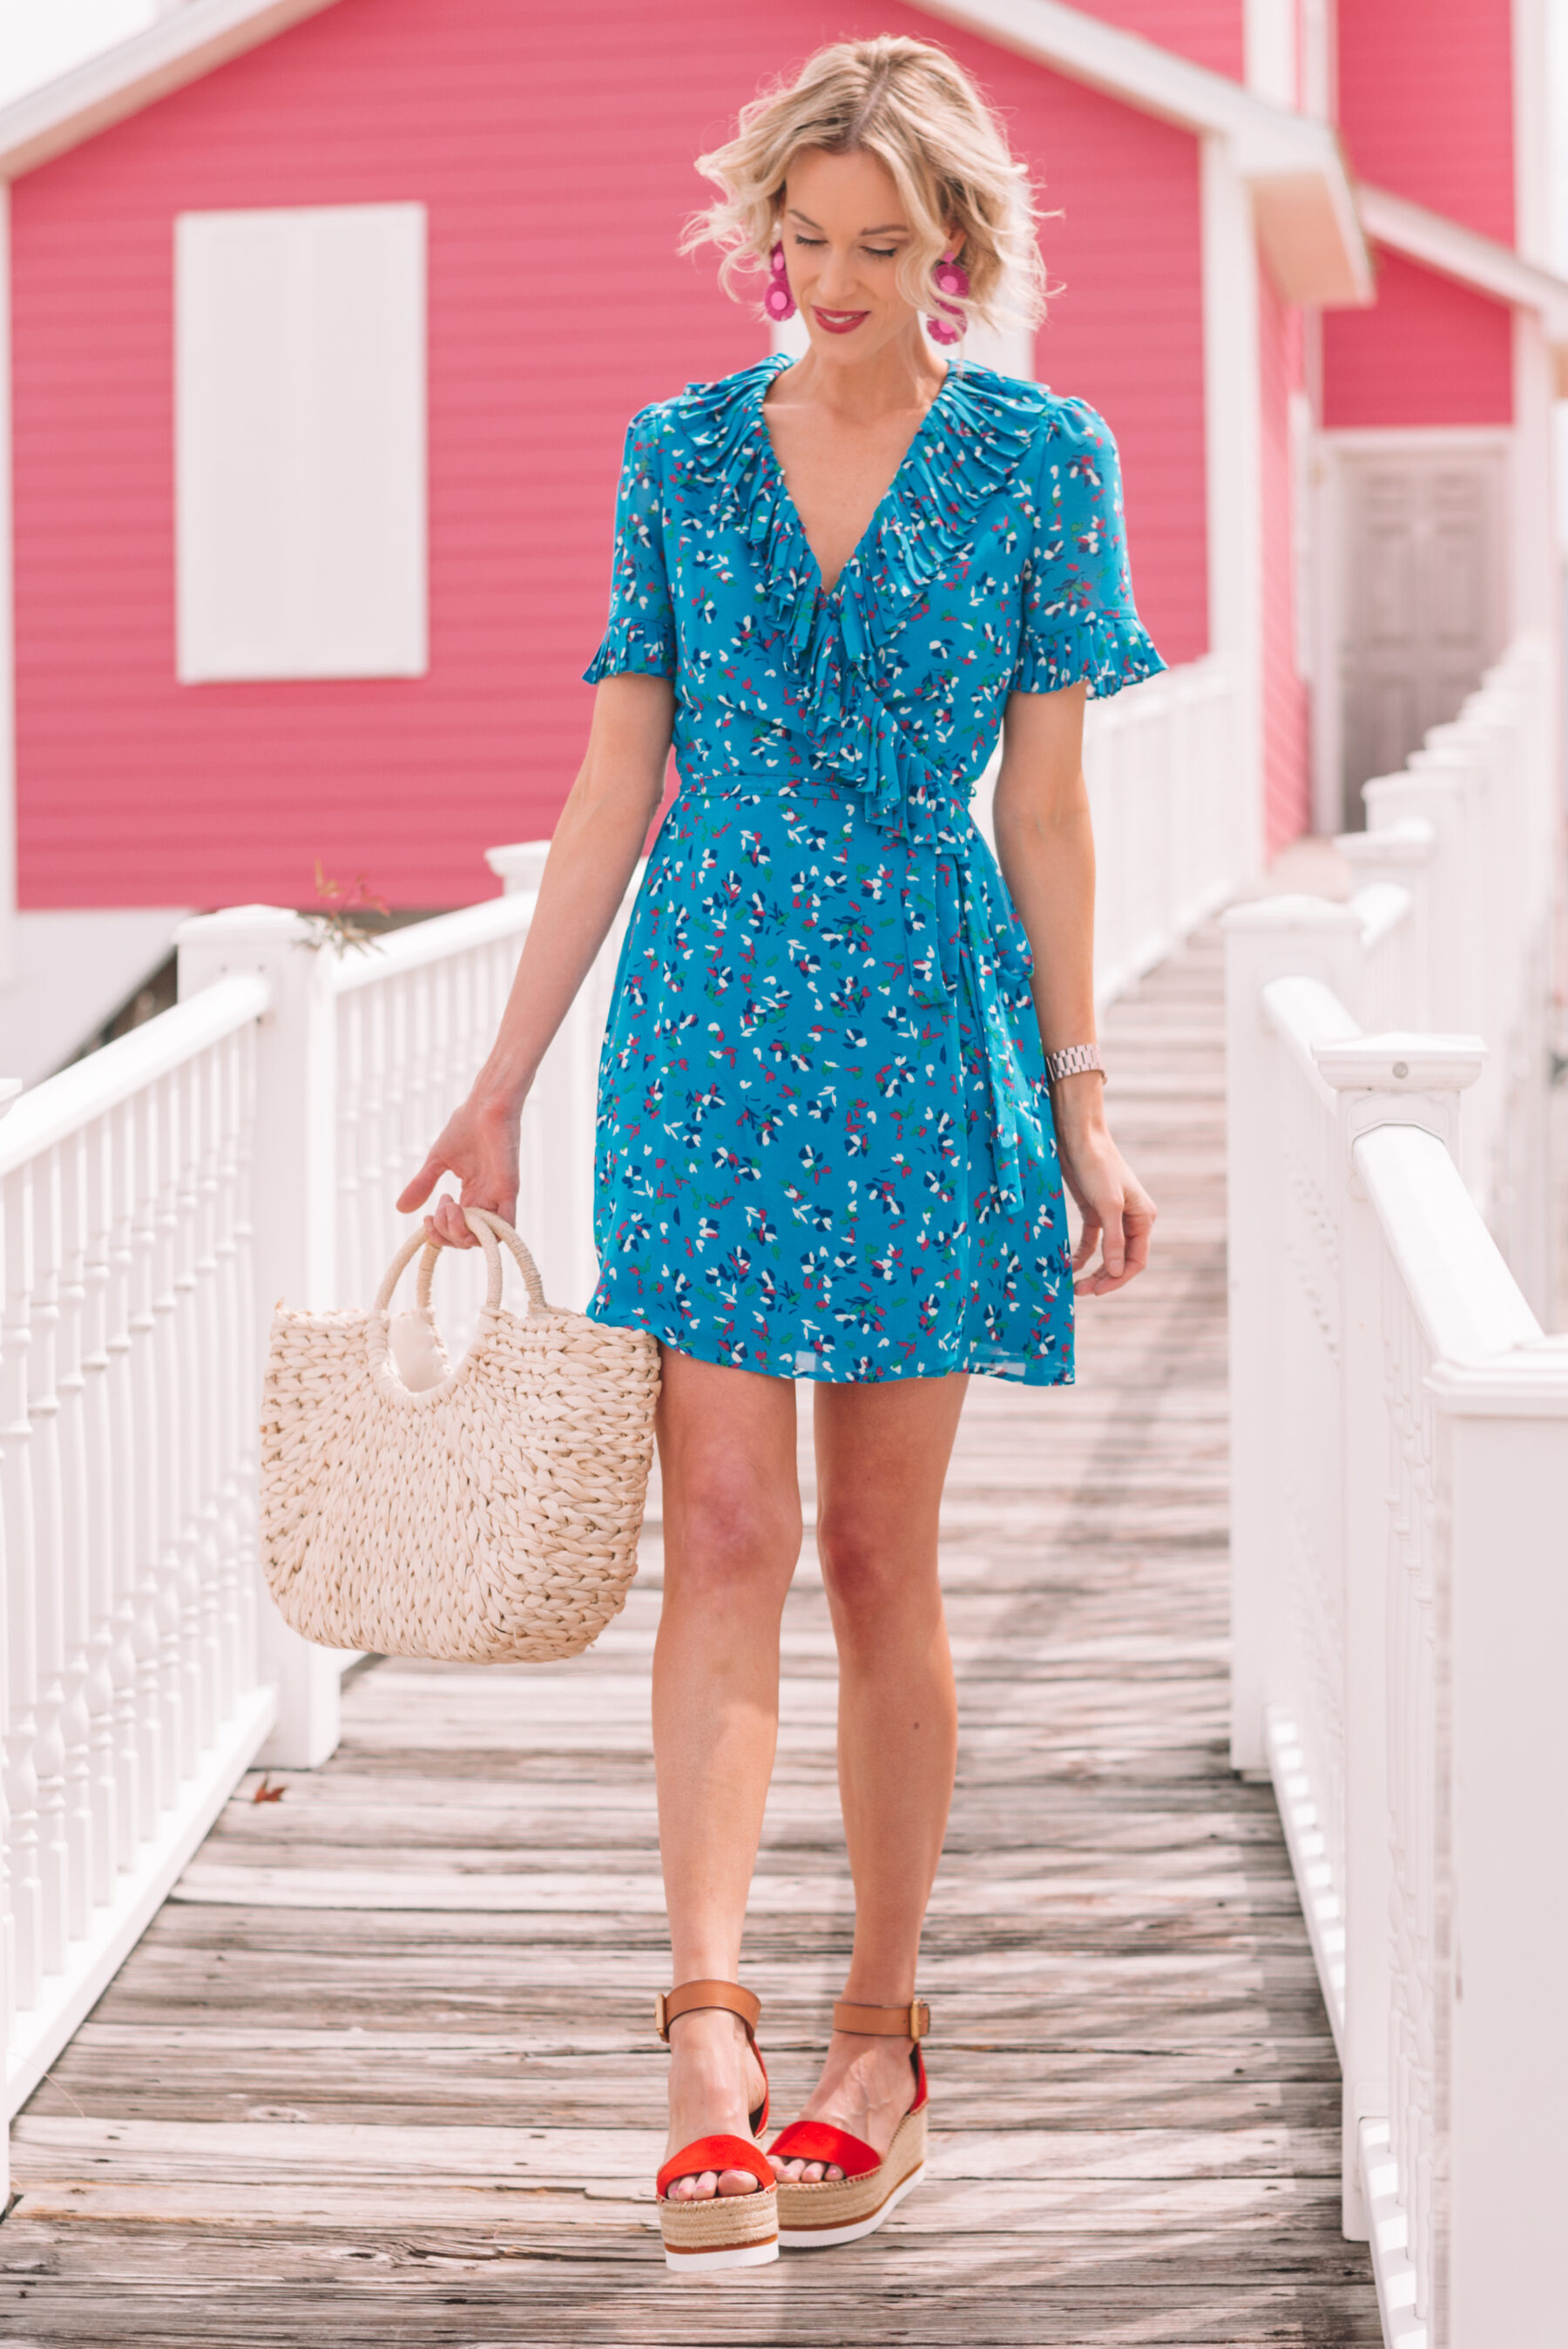 349e05339f855 colorful and fun blue wrap style mini dress with red flatform sandals for  summer ...